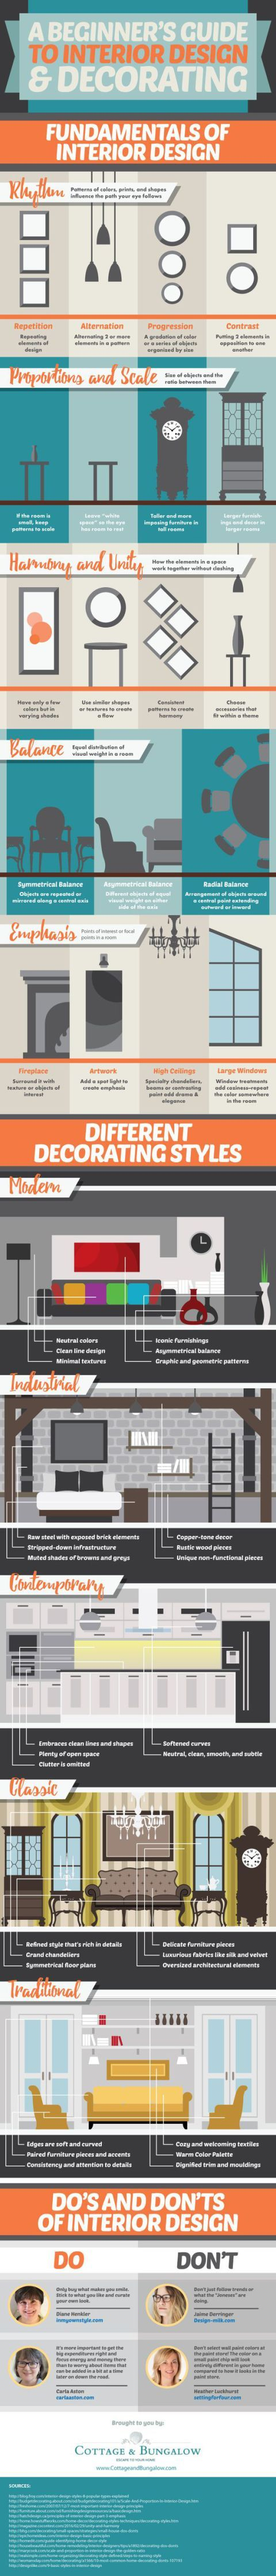 Interior Design, Decorating Tips for Beginners